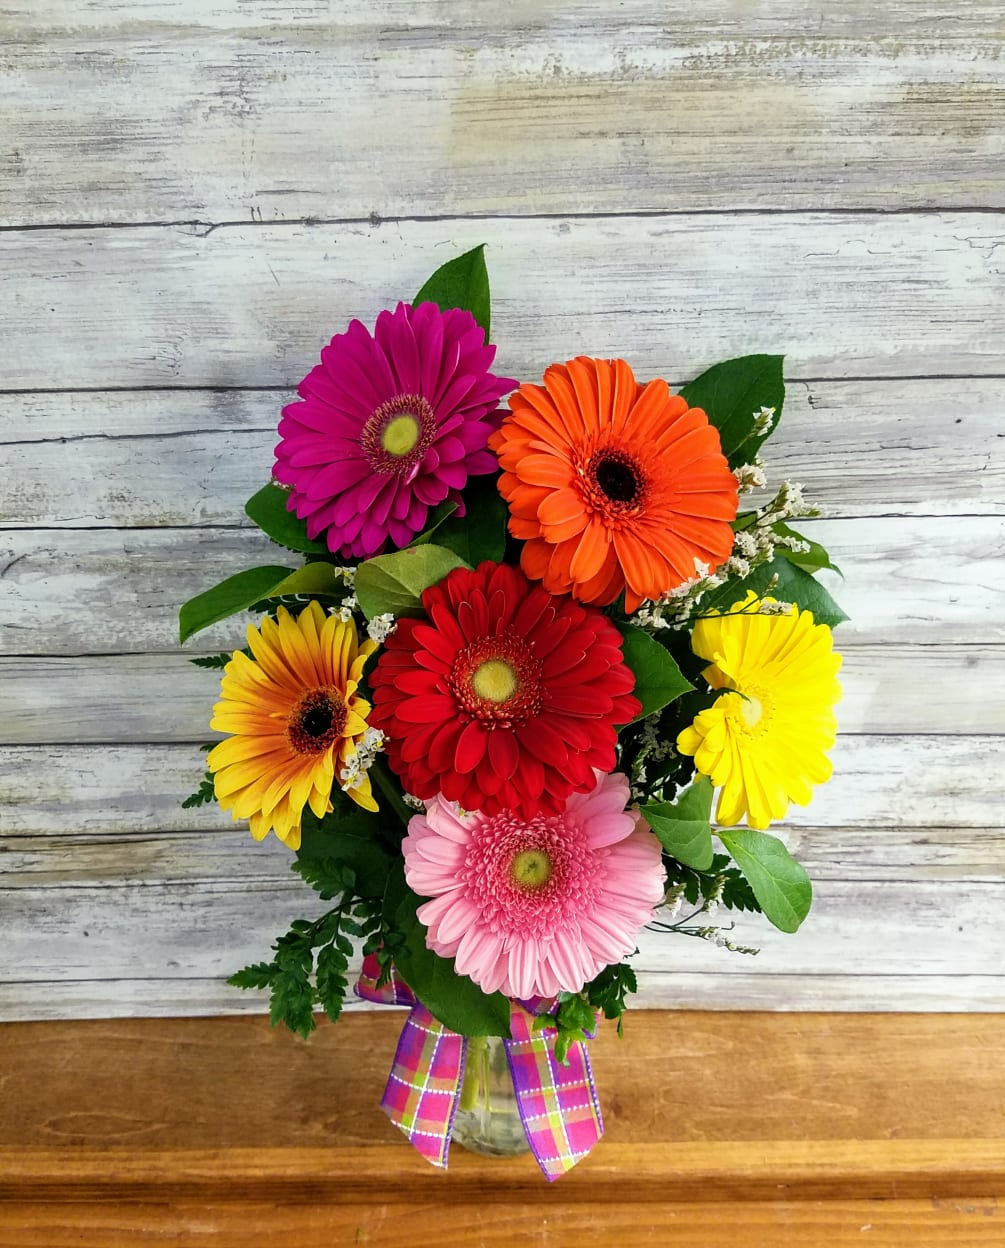 Gerbera Daisy Mason Jar. Brighten their day with this vibrant bouquet! Send someone 6 beautiful bright